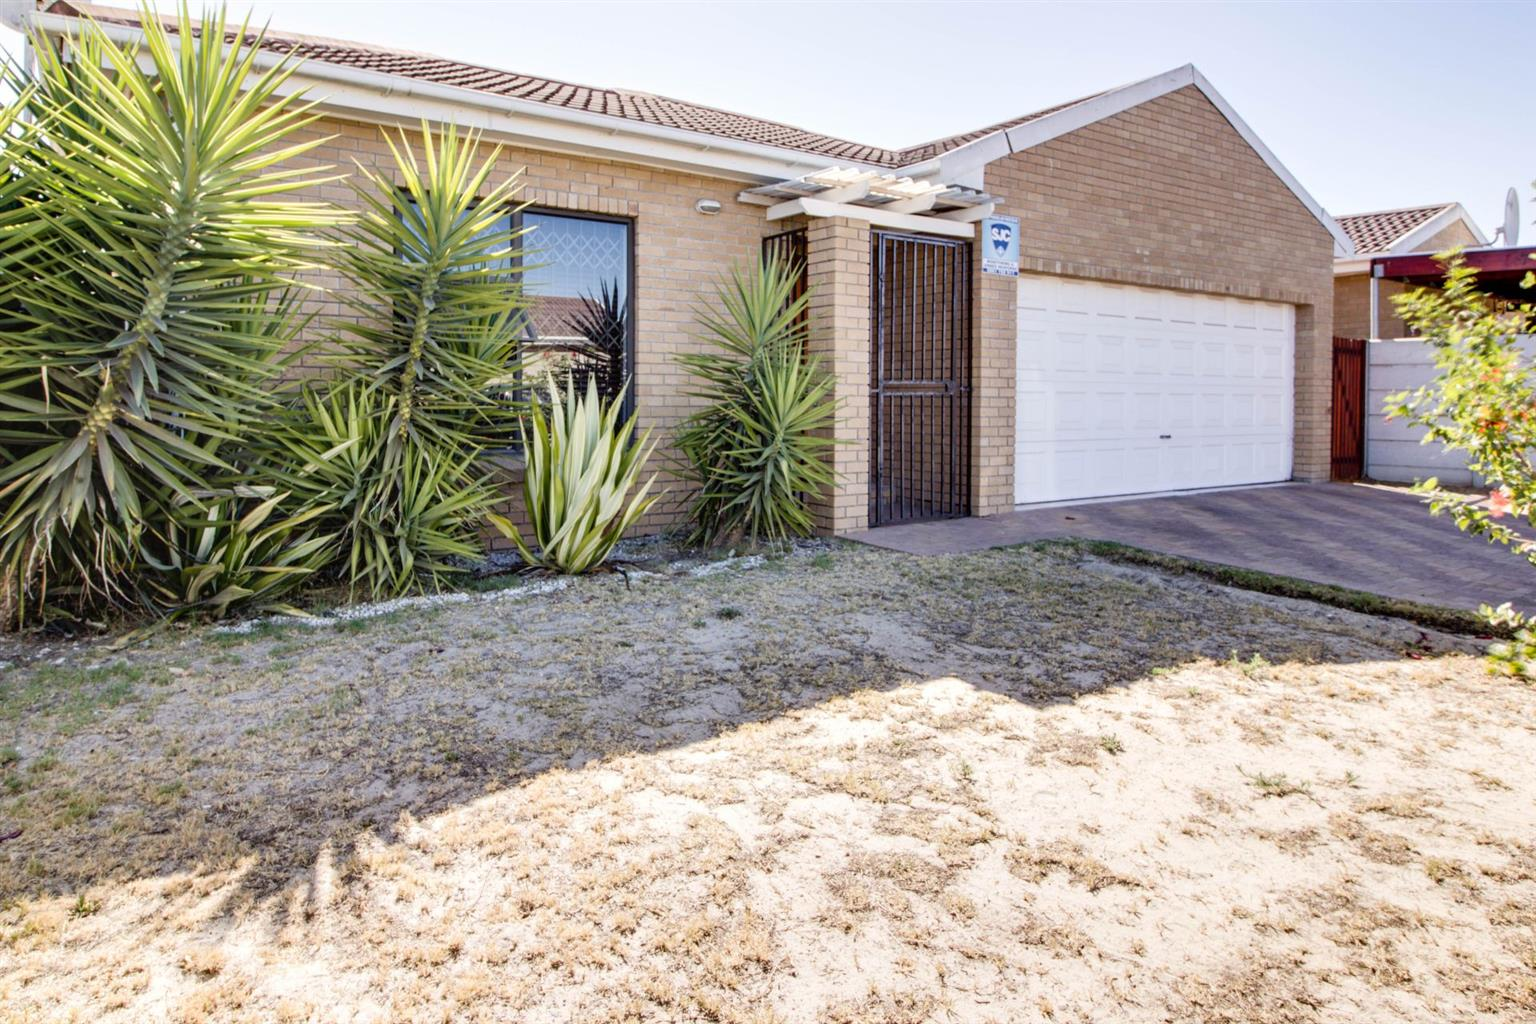 3 Bedroom house avail in Protea Heights for 1 March @ R12, 800 PM for long term rental to a stable family